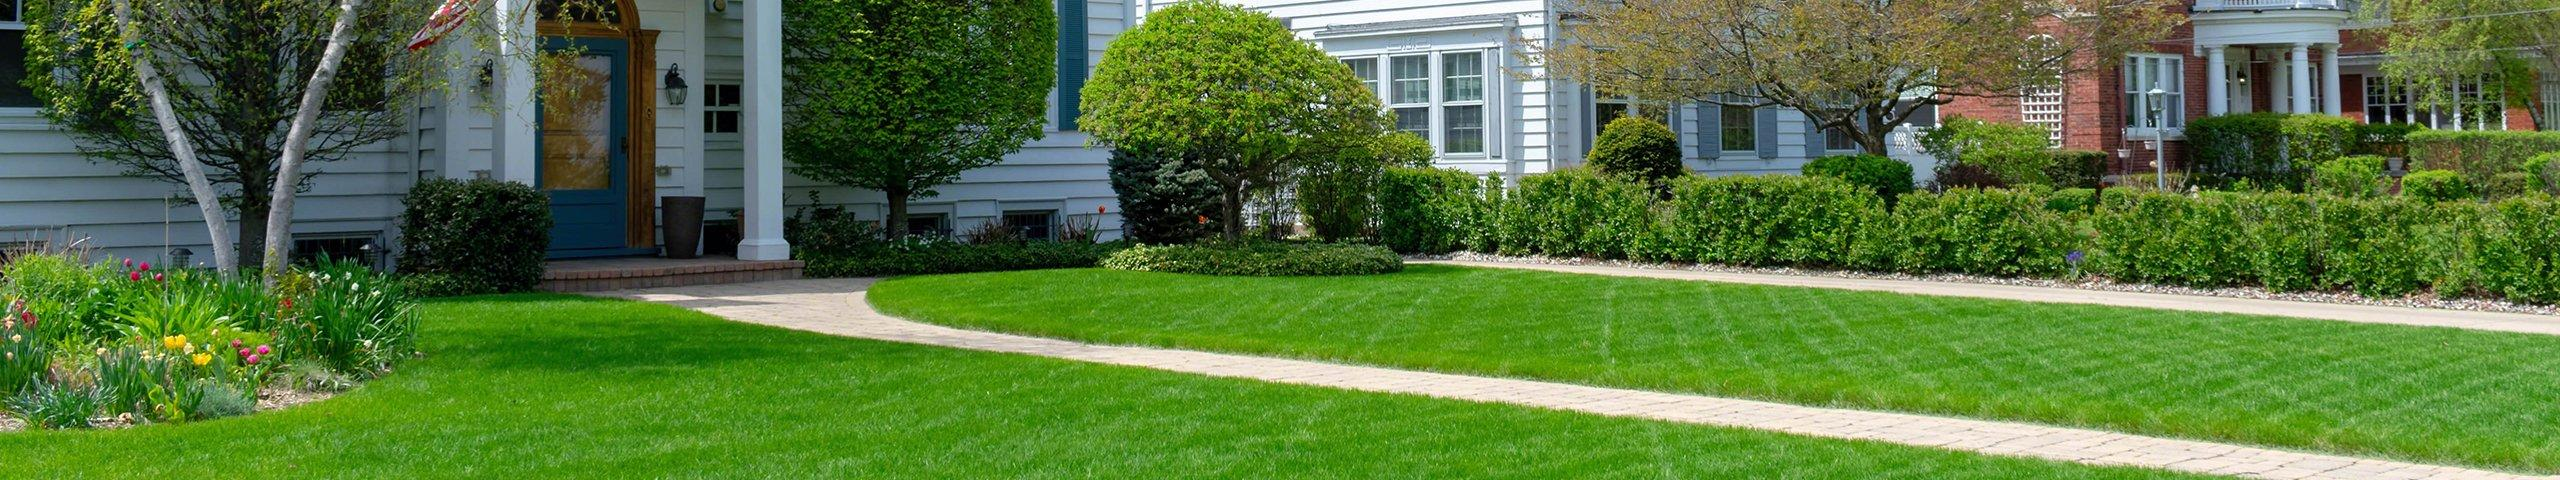 a nice green lawn outside homes in jacksonville florida